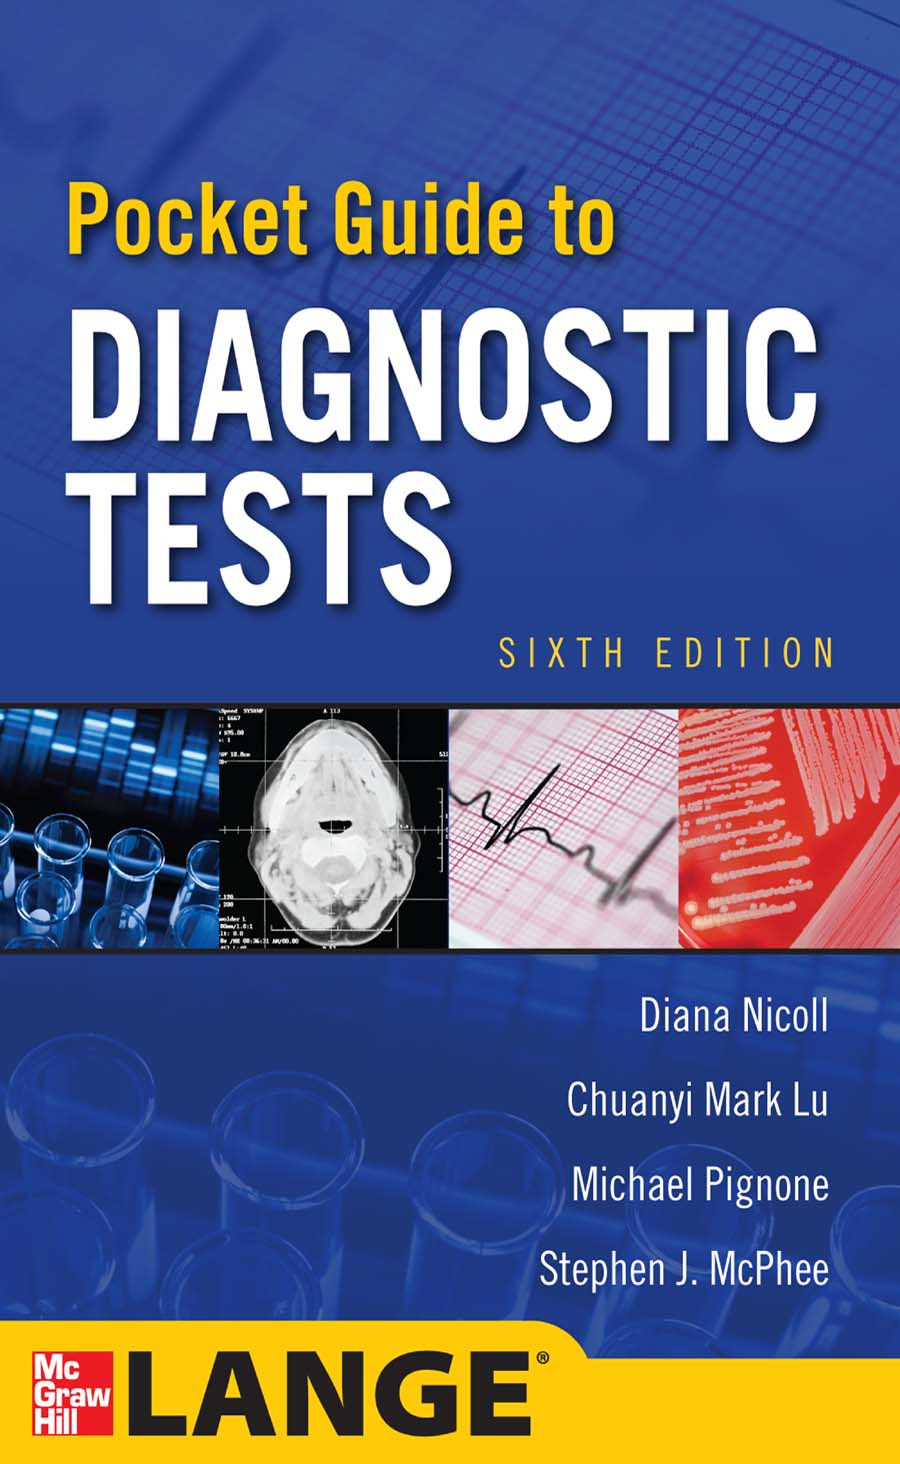 Pocket Guide to Diagnostic Tests, Sixth Edition